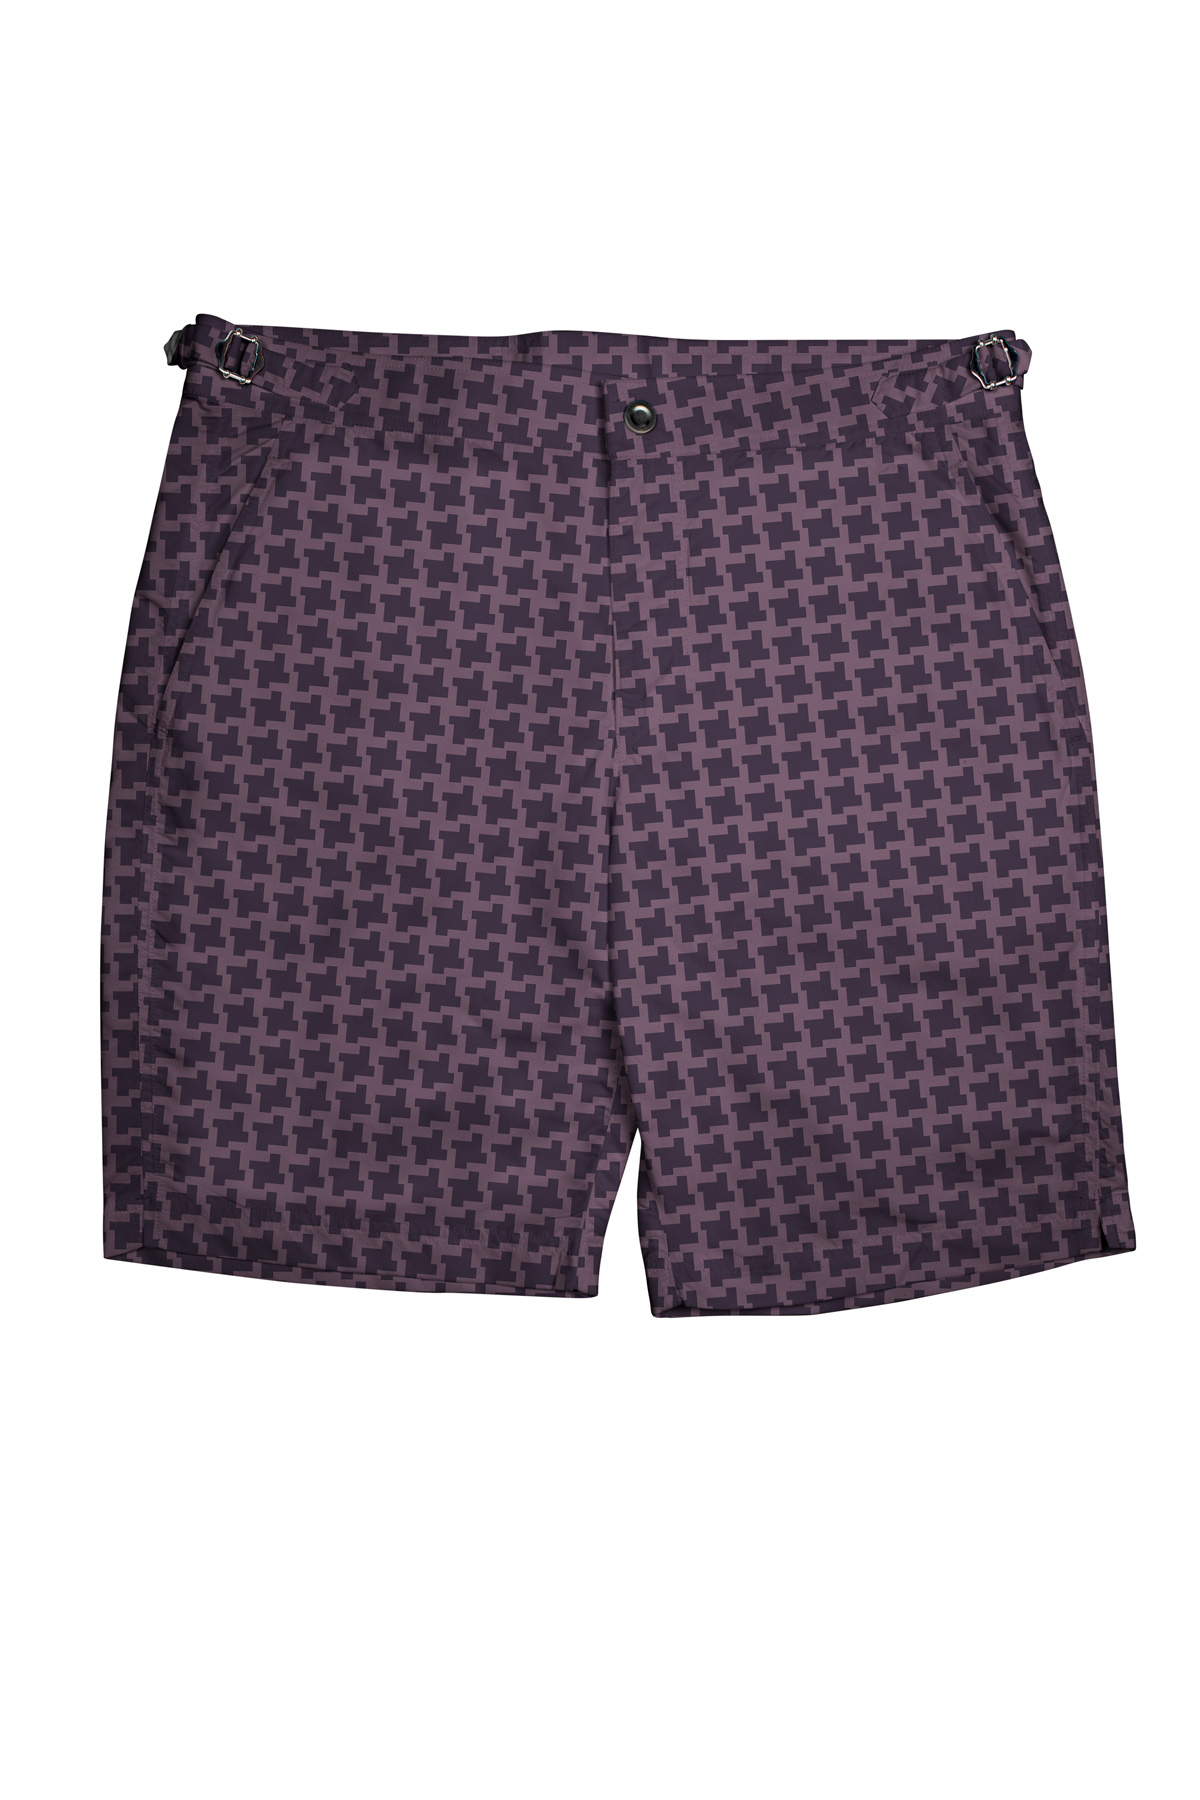 Purple Houndstooth Swim Shorts